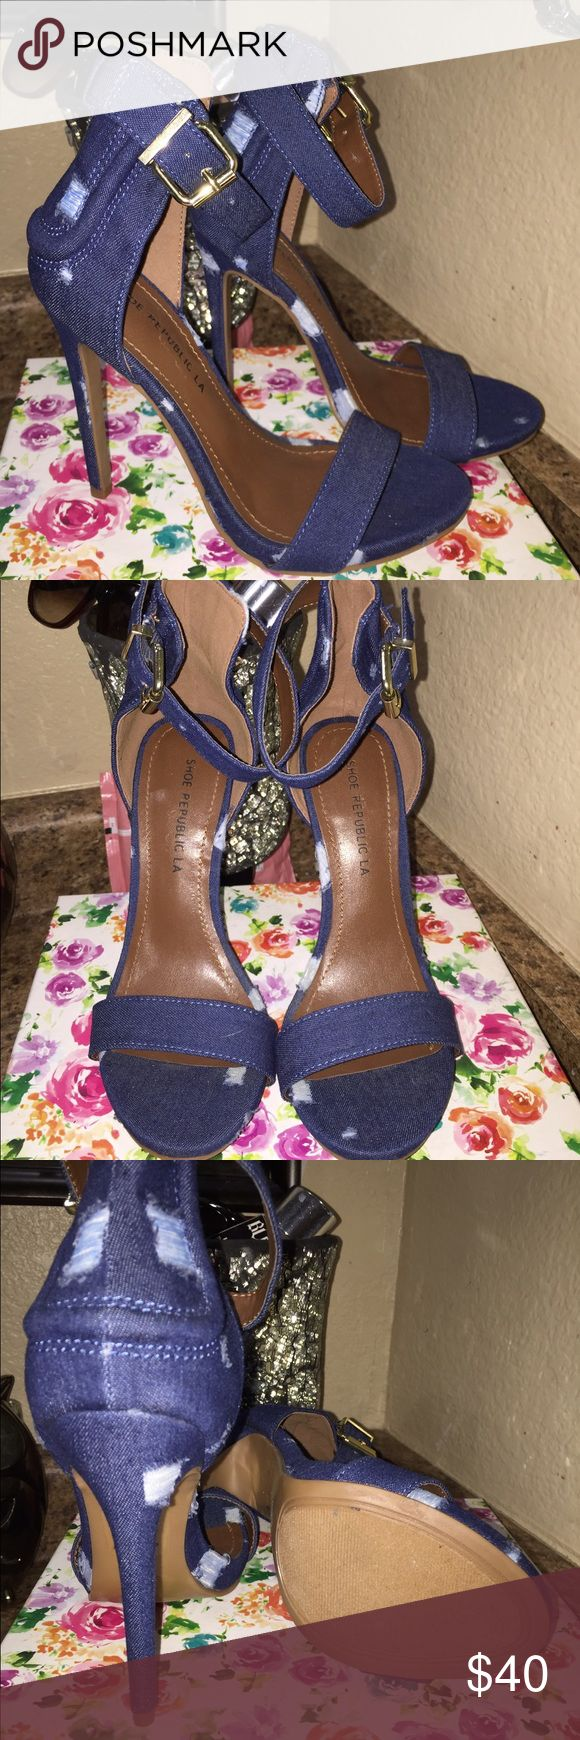 Denim heels Brand new denim heels size 5.5 with gold buckle heel size 5 inches price is firm! Shoe republic L.A. Shoes Heels